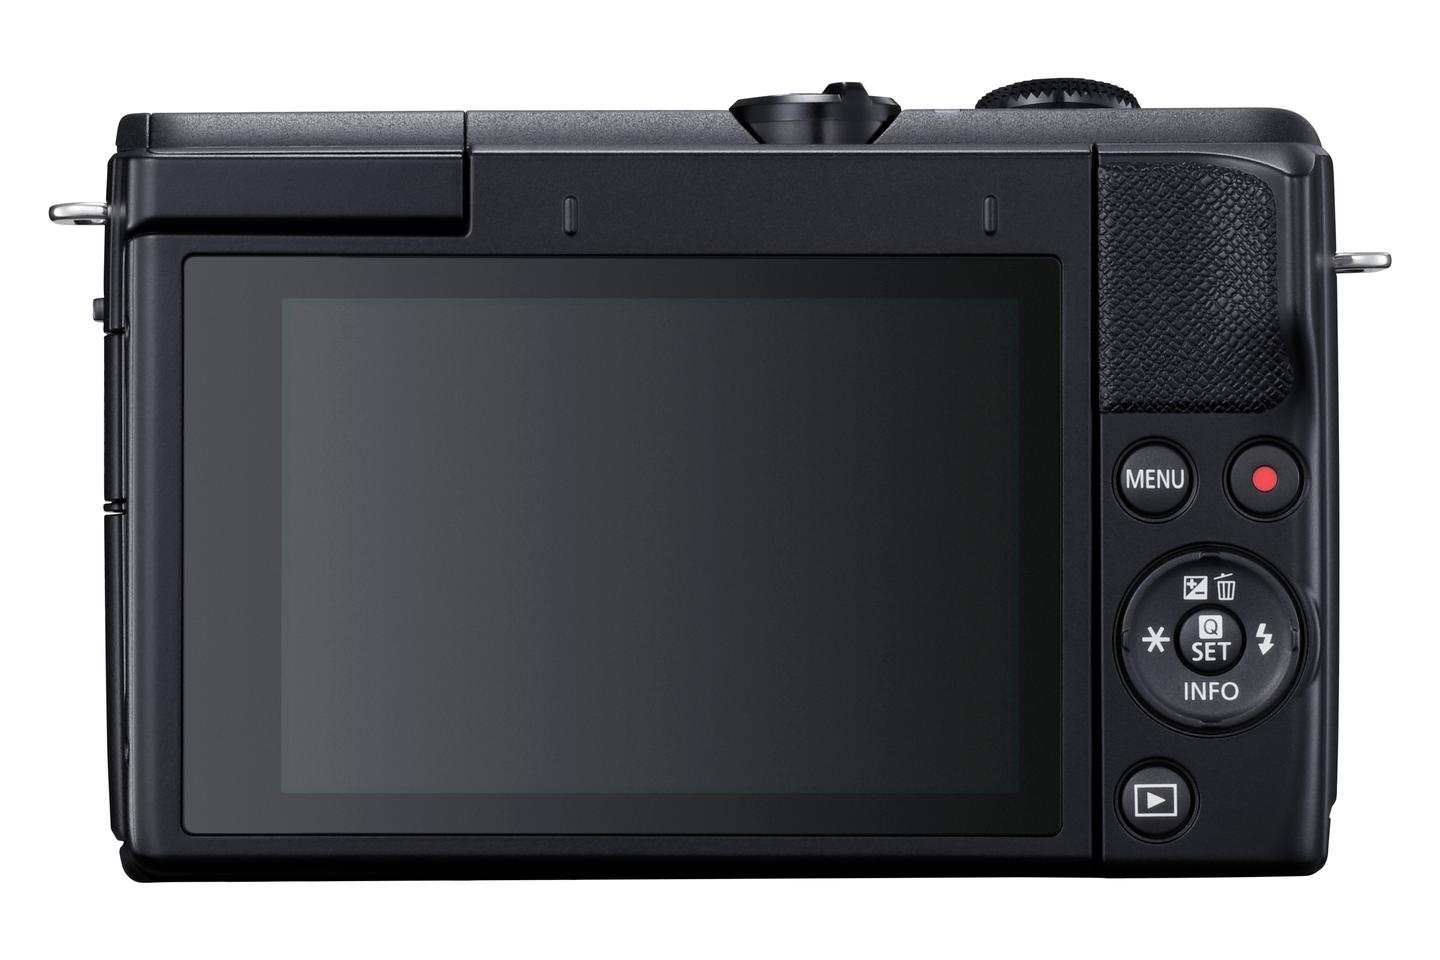 The EOS M200 features a 3-inch flip-up touchscreen LCD panel